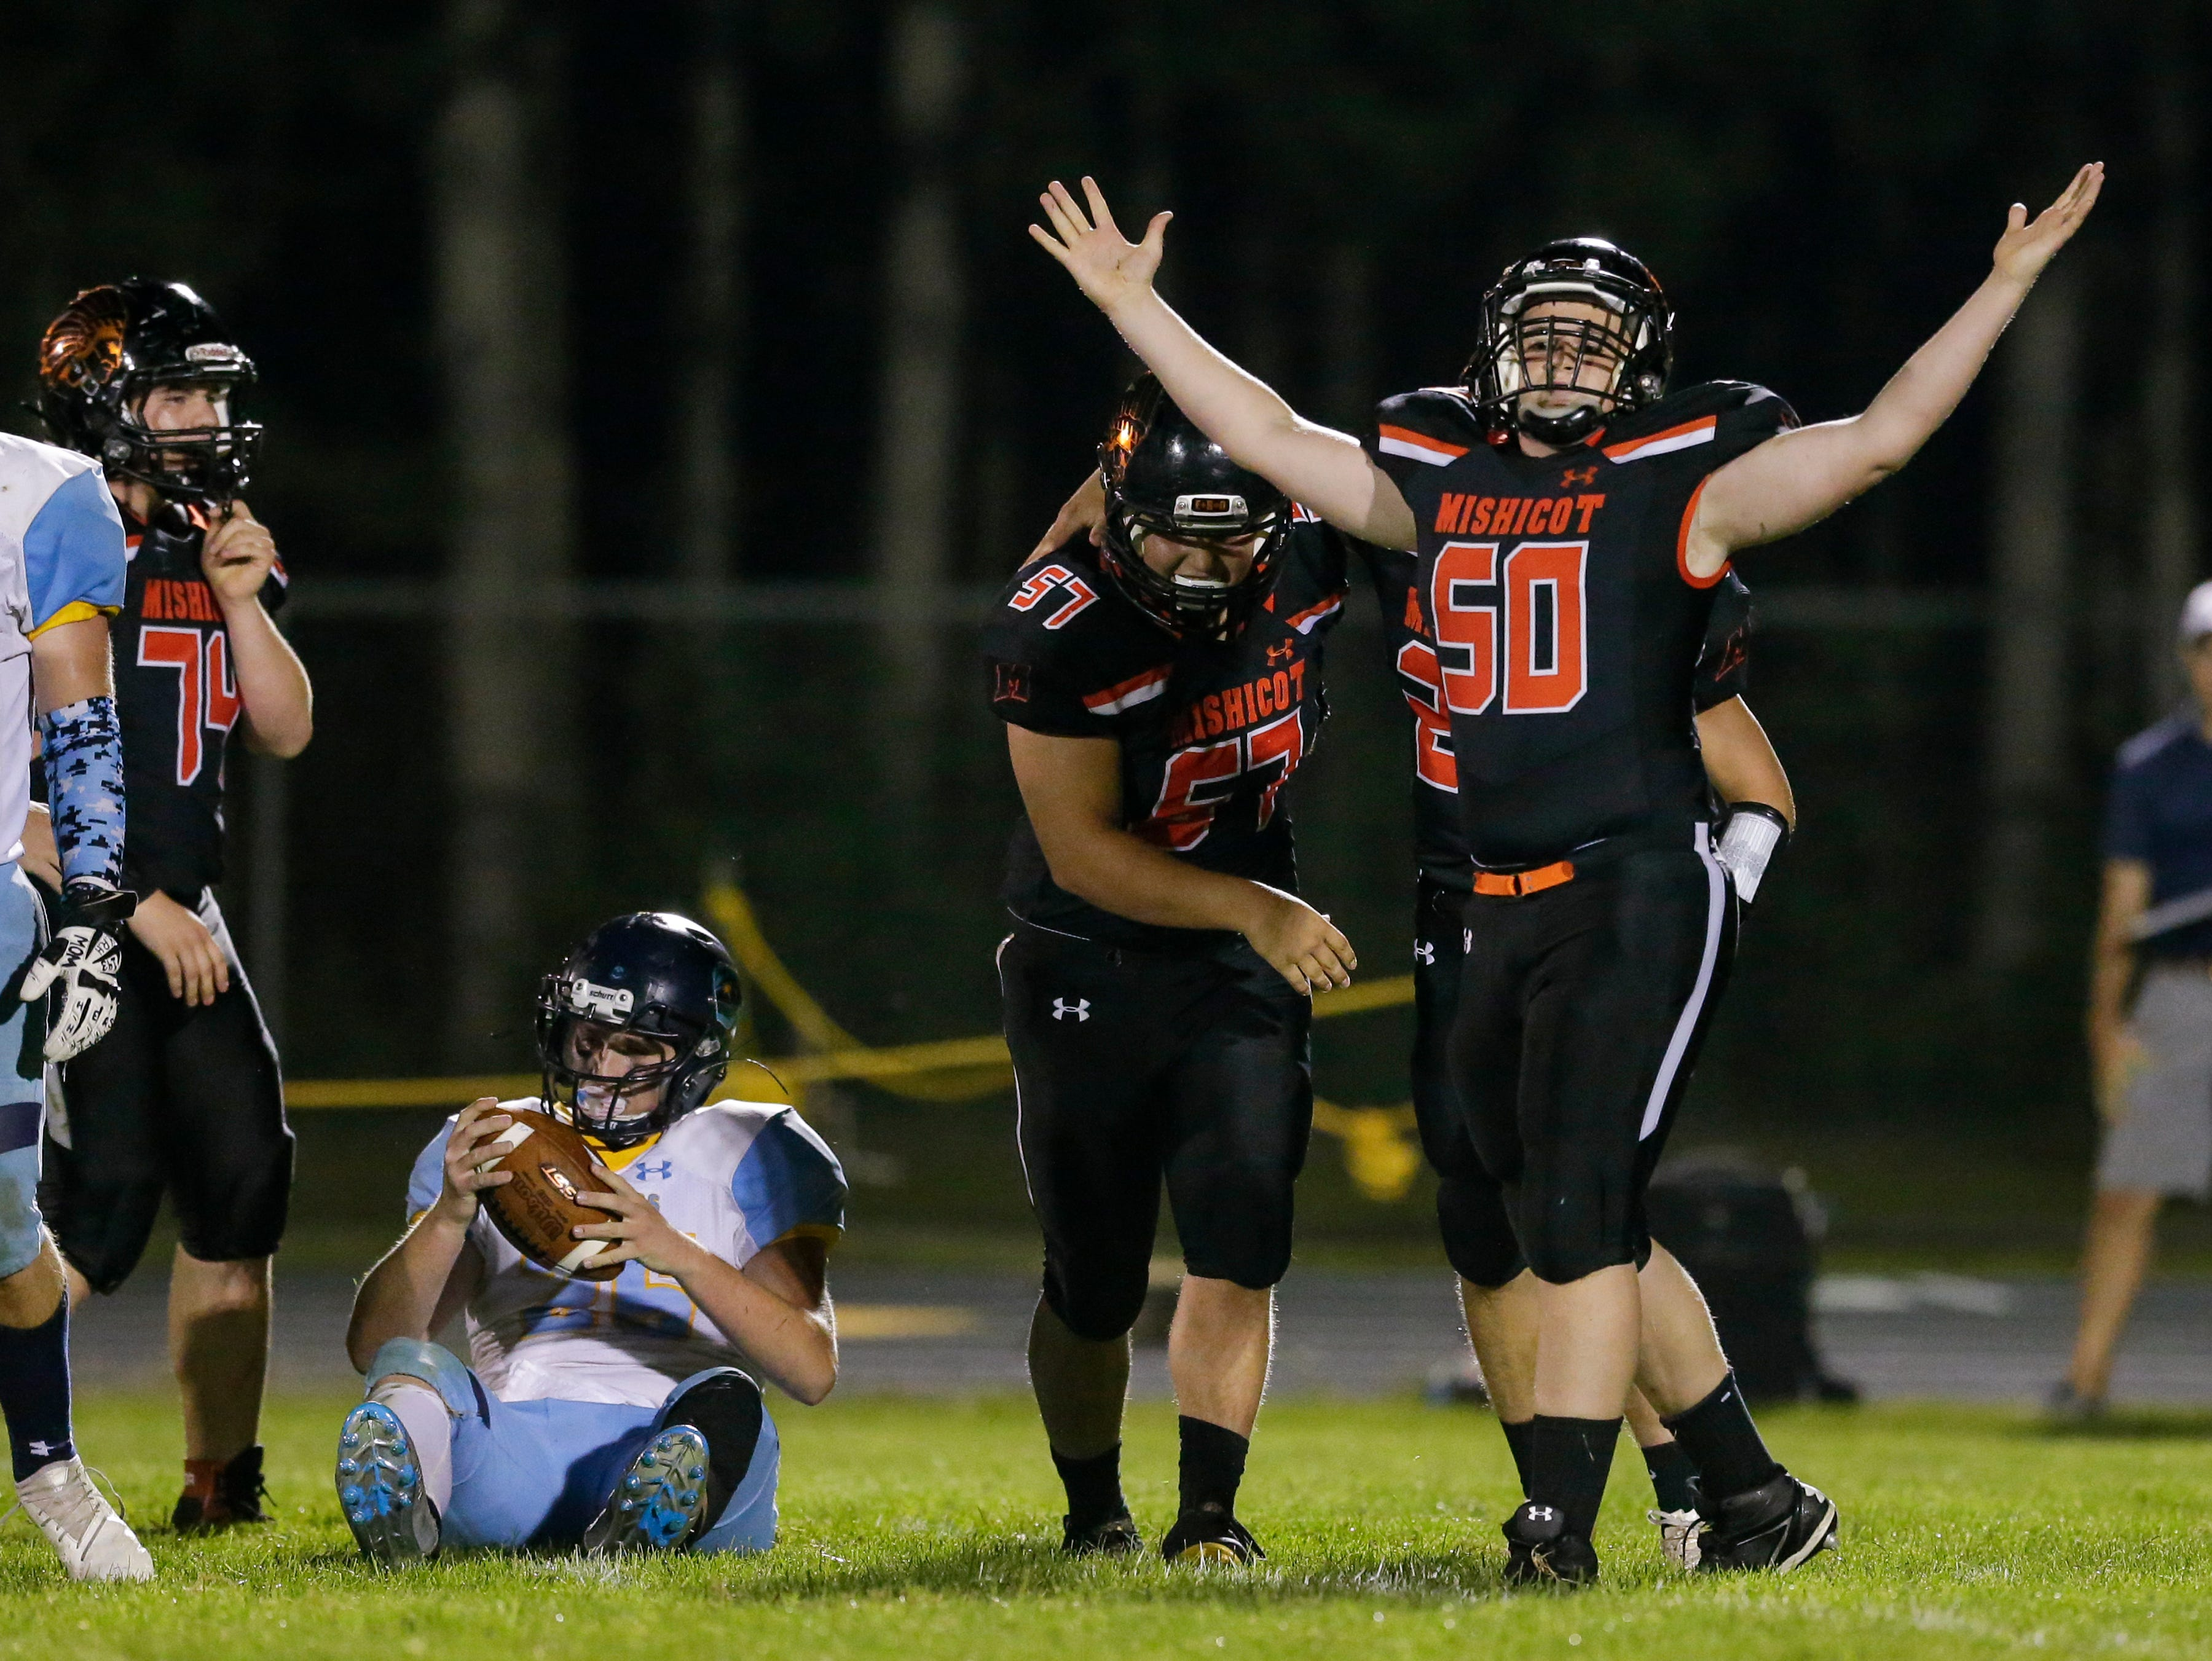 Mishicot's Ethan Brossard (50) reacts after sacking St. Mary Catholic's Logan Groebner (25) during a Big East Conference matchup at Mishicot High School Friday, August 31, 2018, in Mishicot, Wis. Josh Clark/USA TODAY NETWORK-Wisconsin